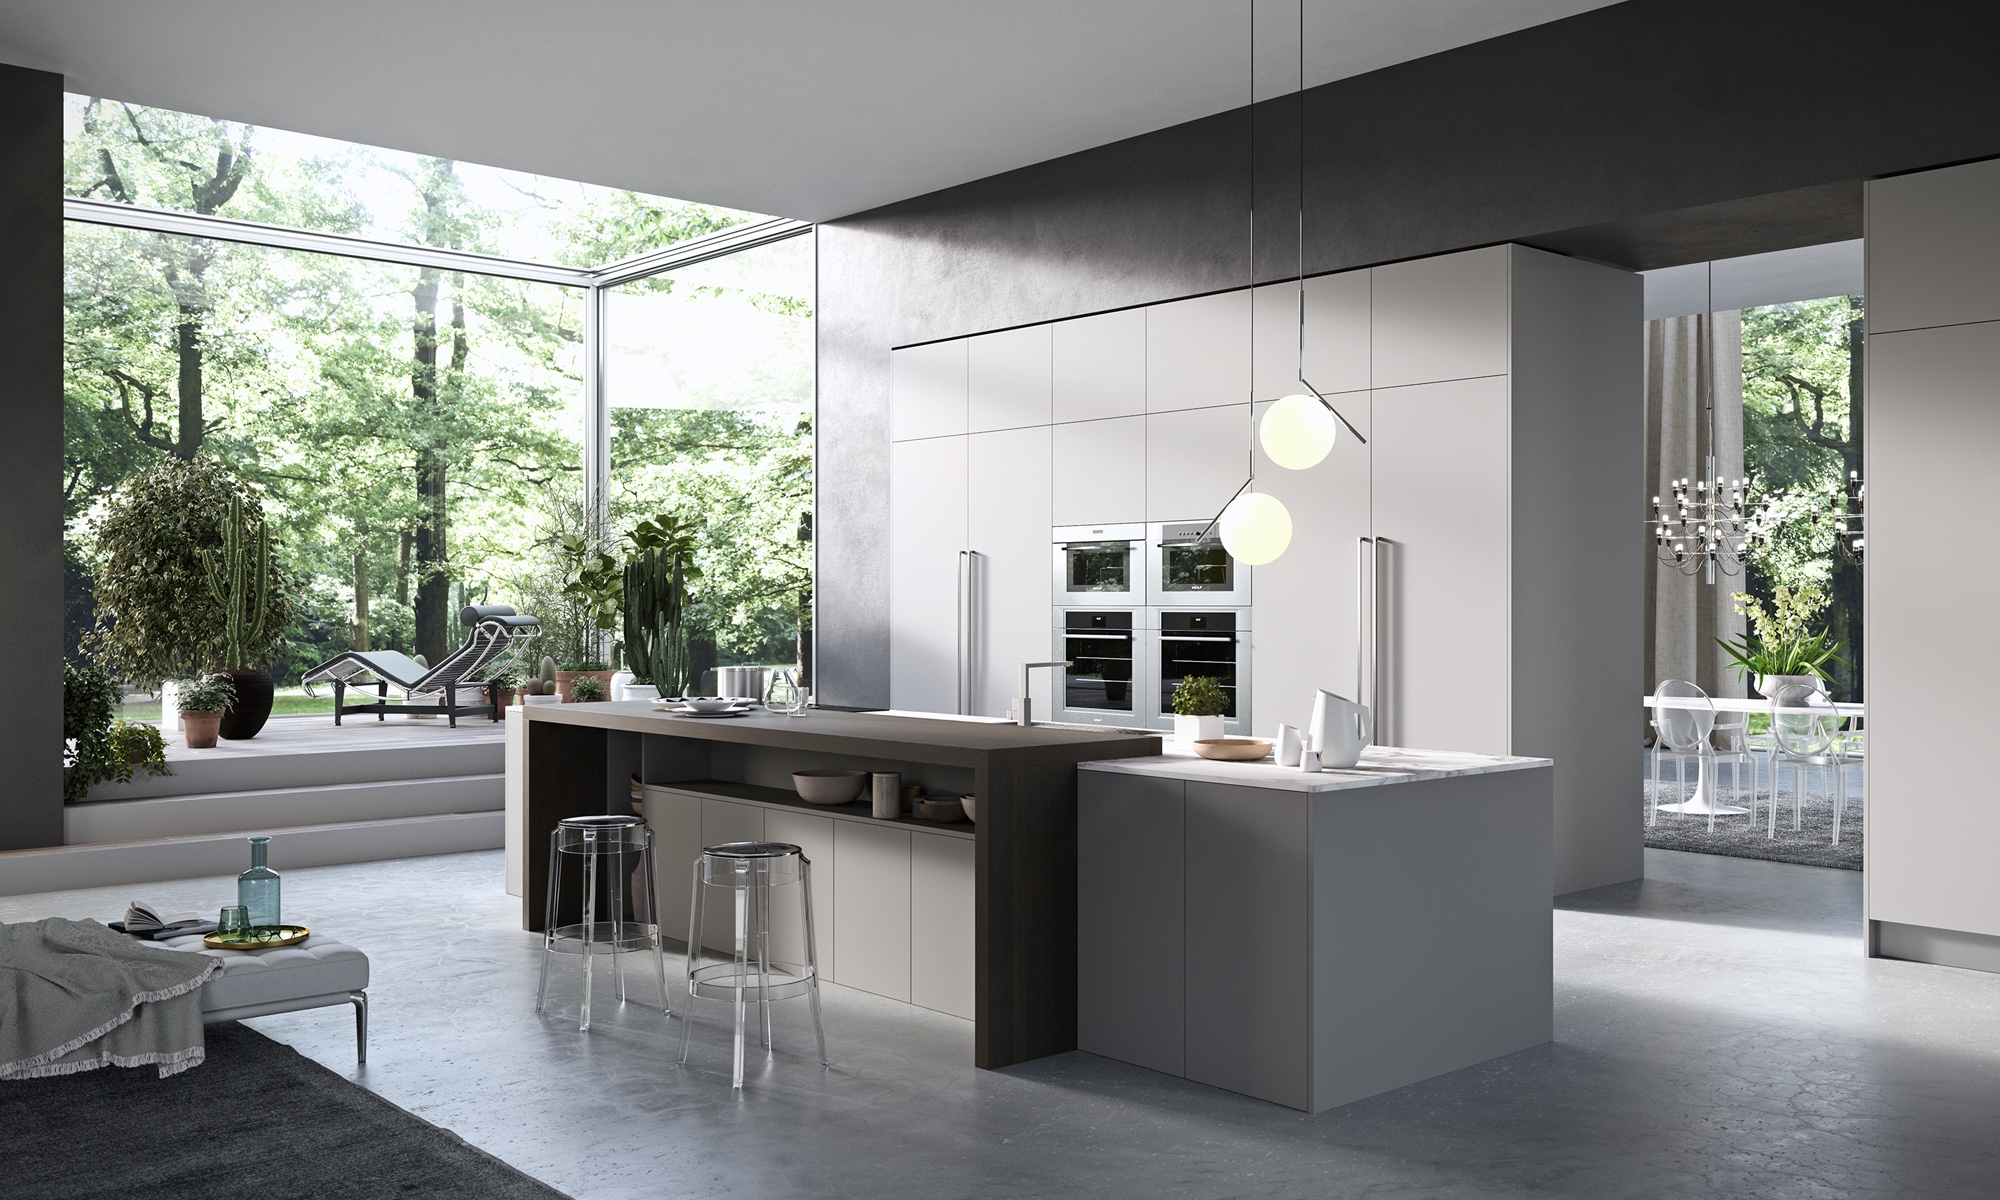 Collection of Modern Italian Kitchens - Record e Cucine